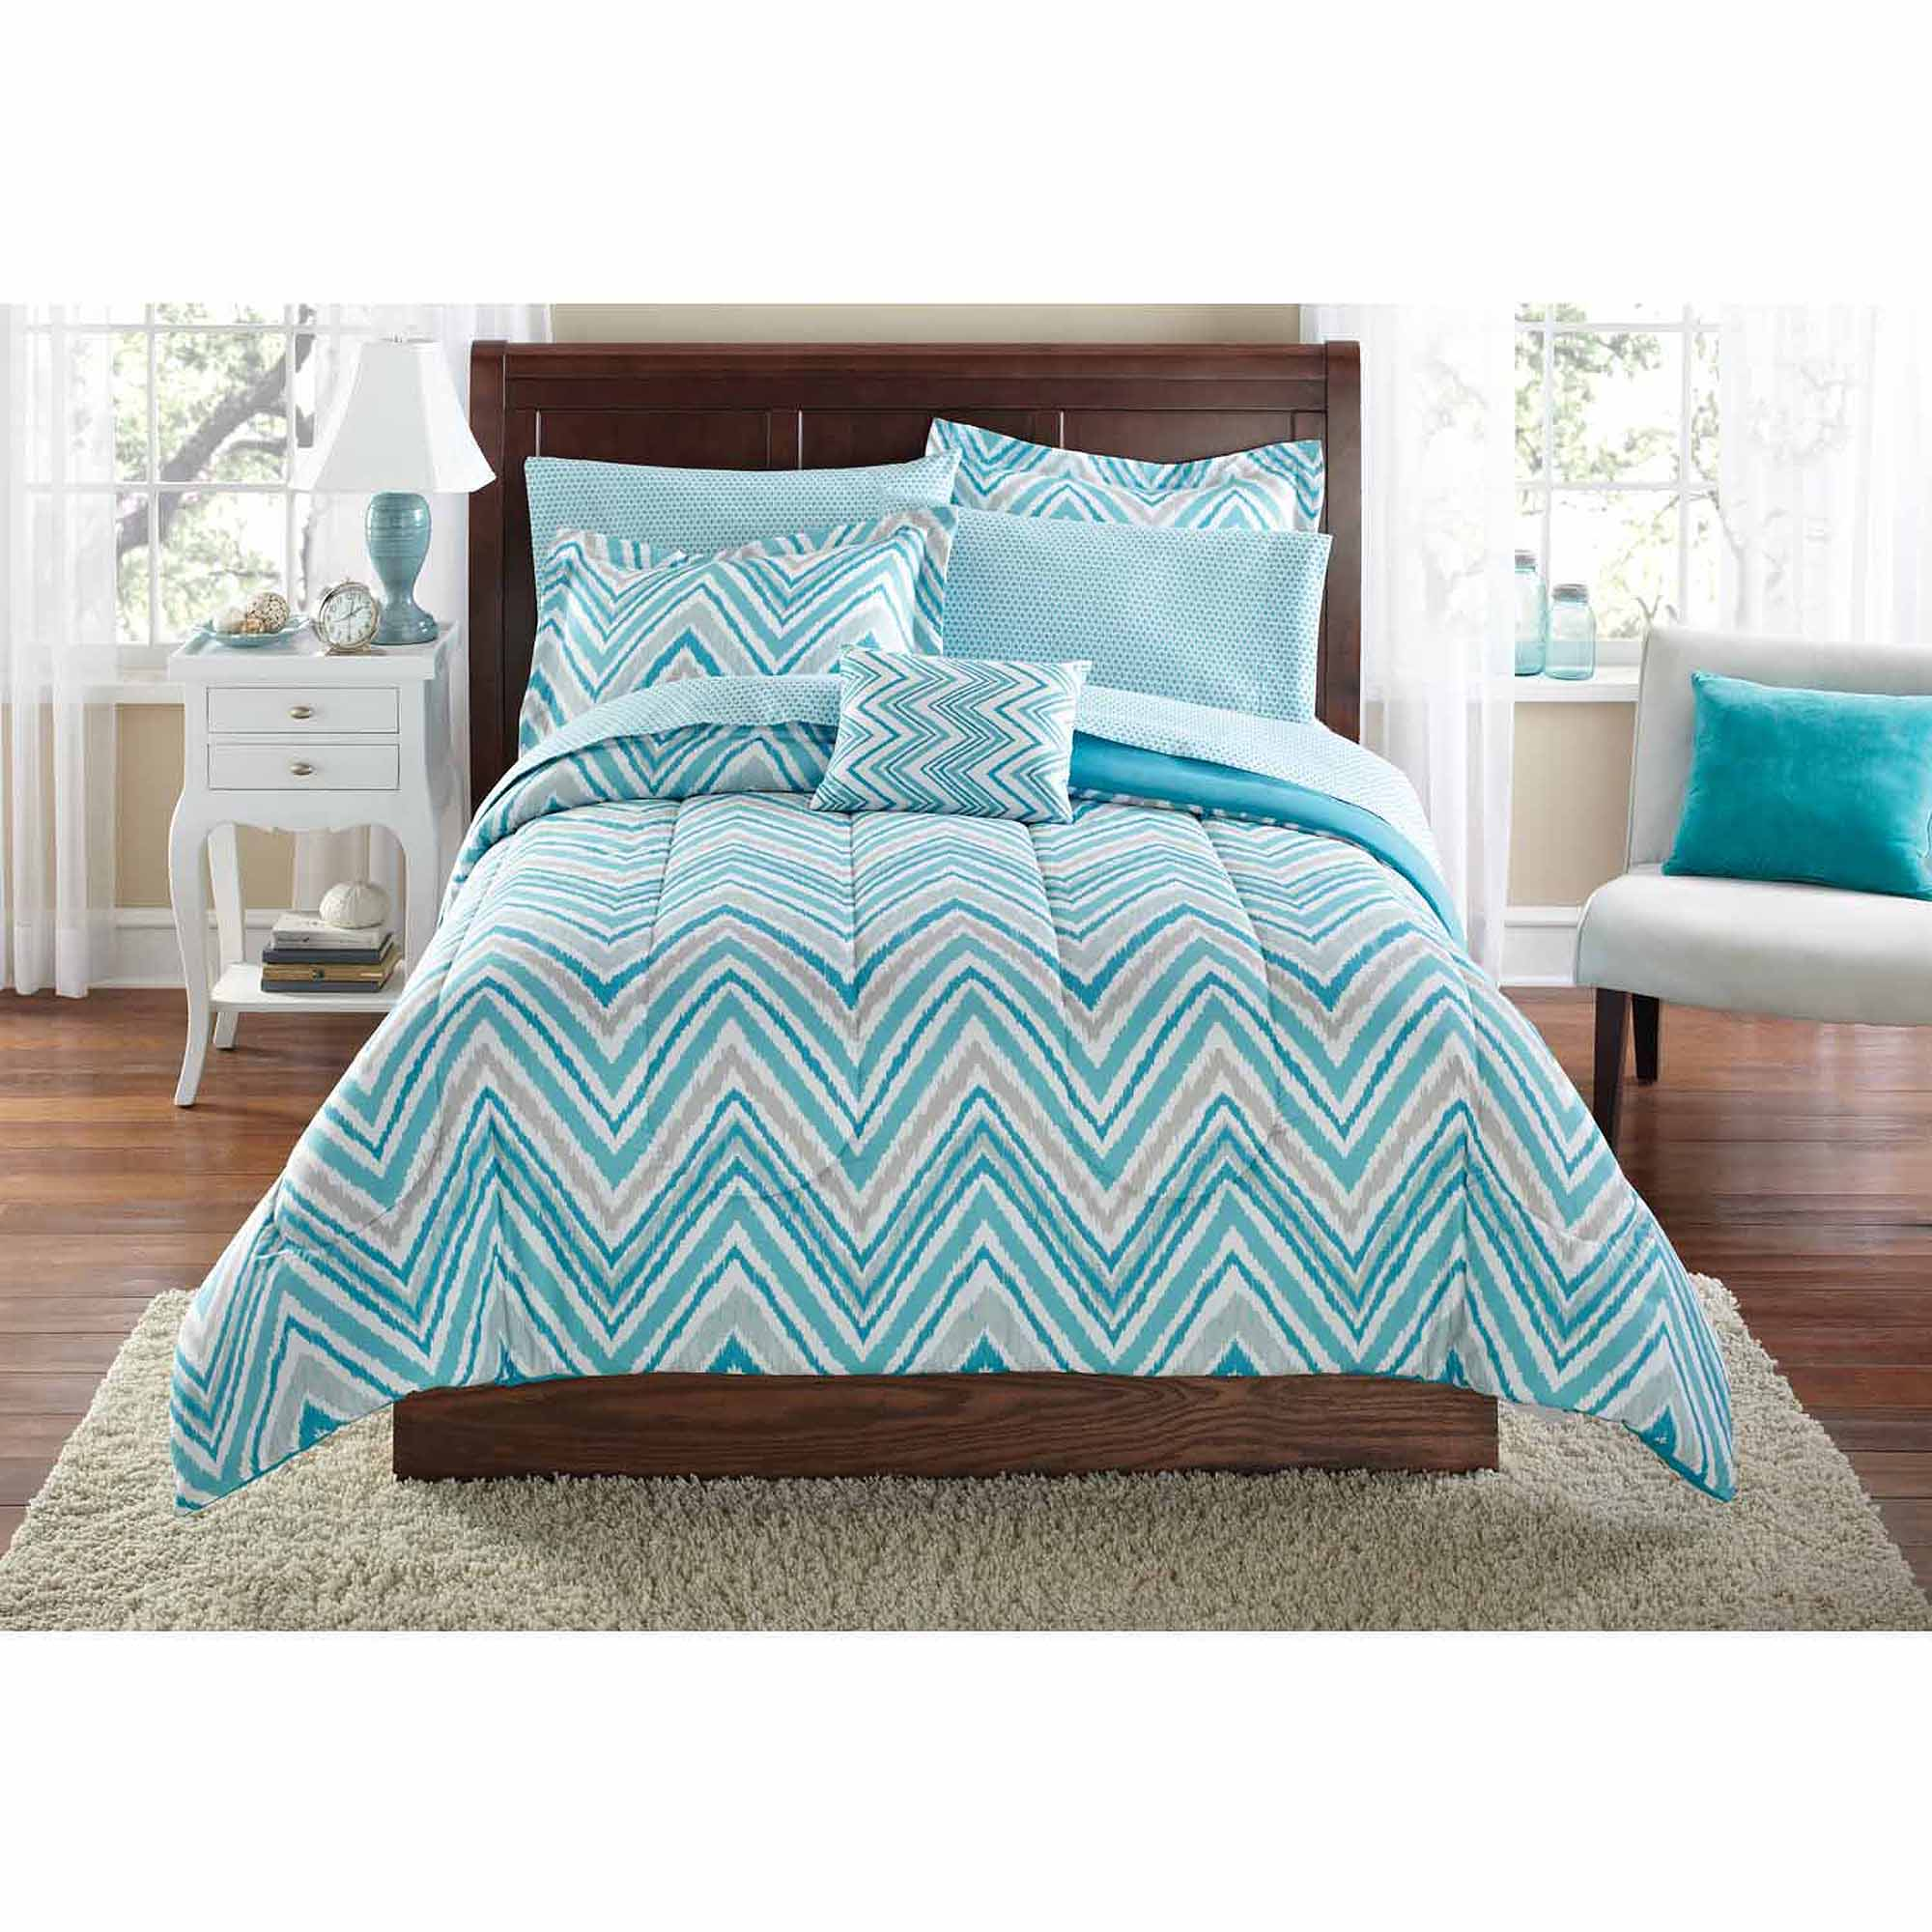 MS WATERCOLOR CHEVRON BNB   Walmart.com